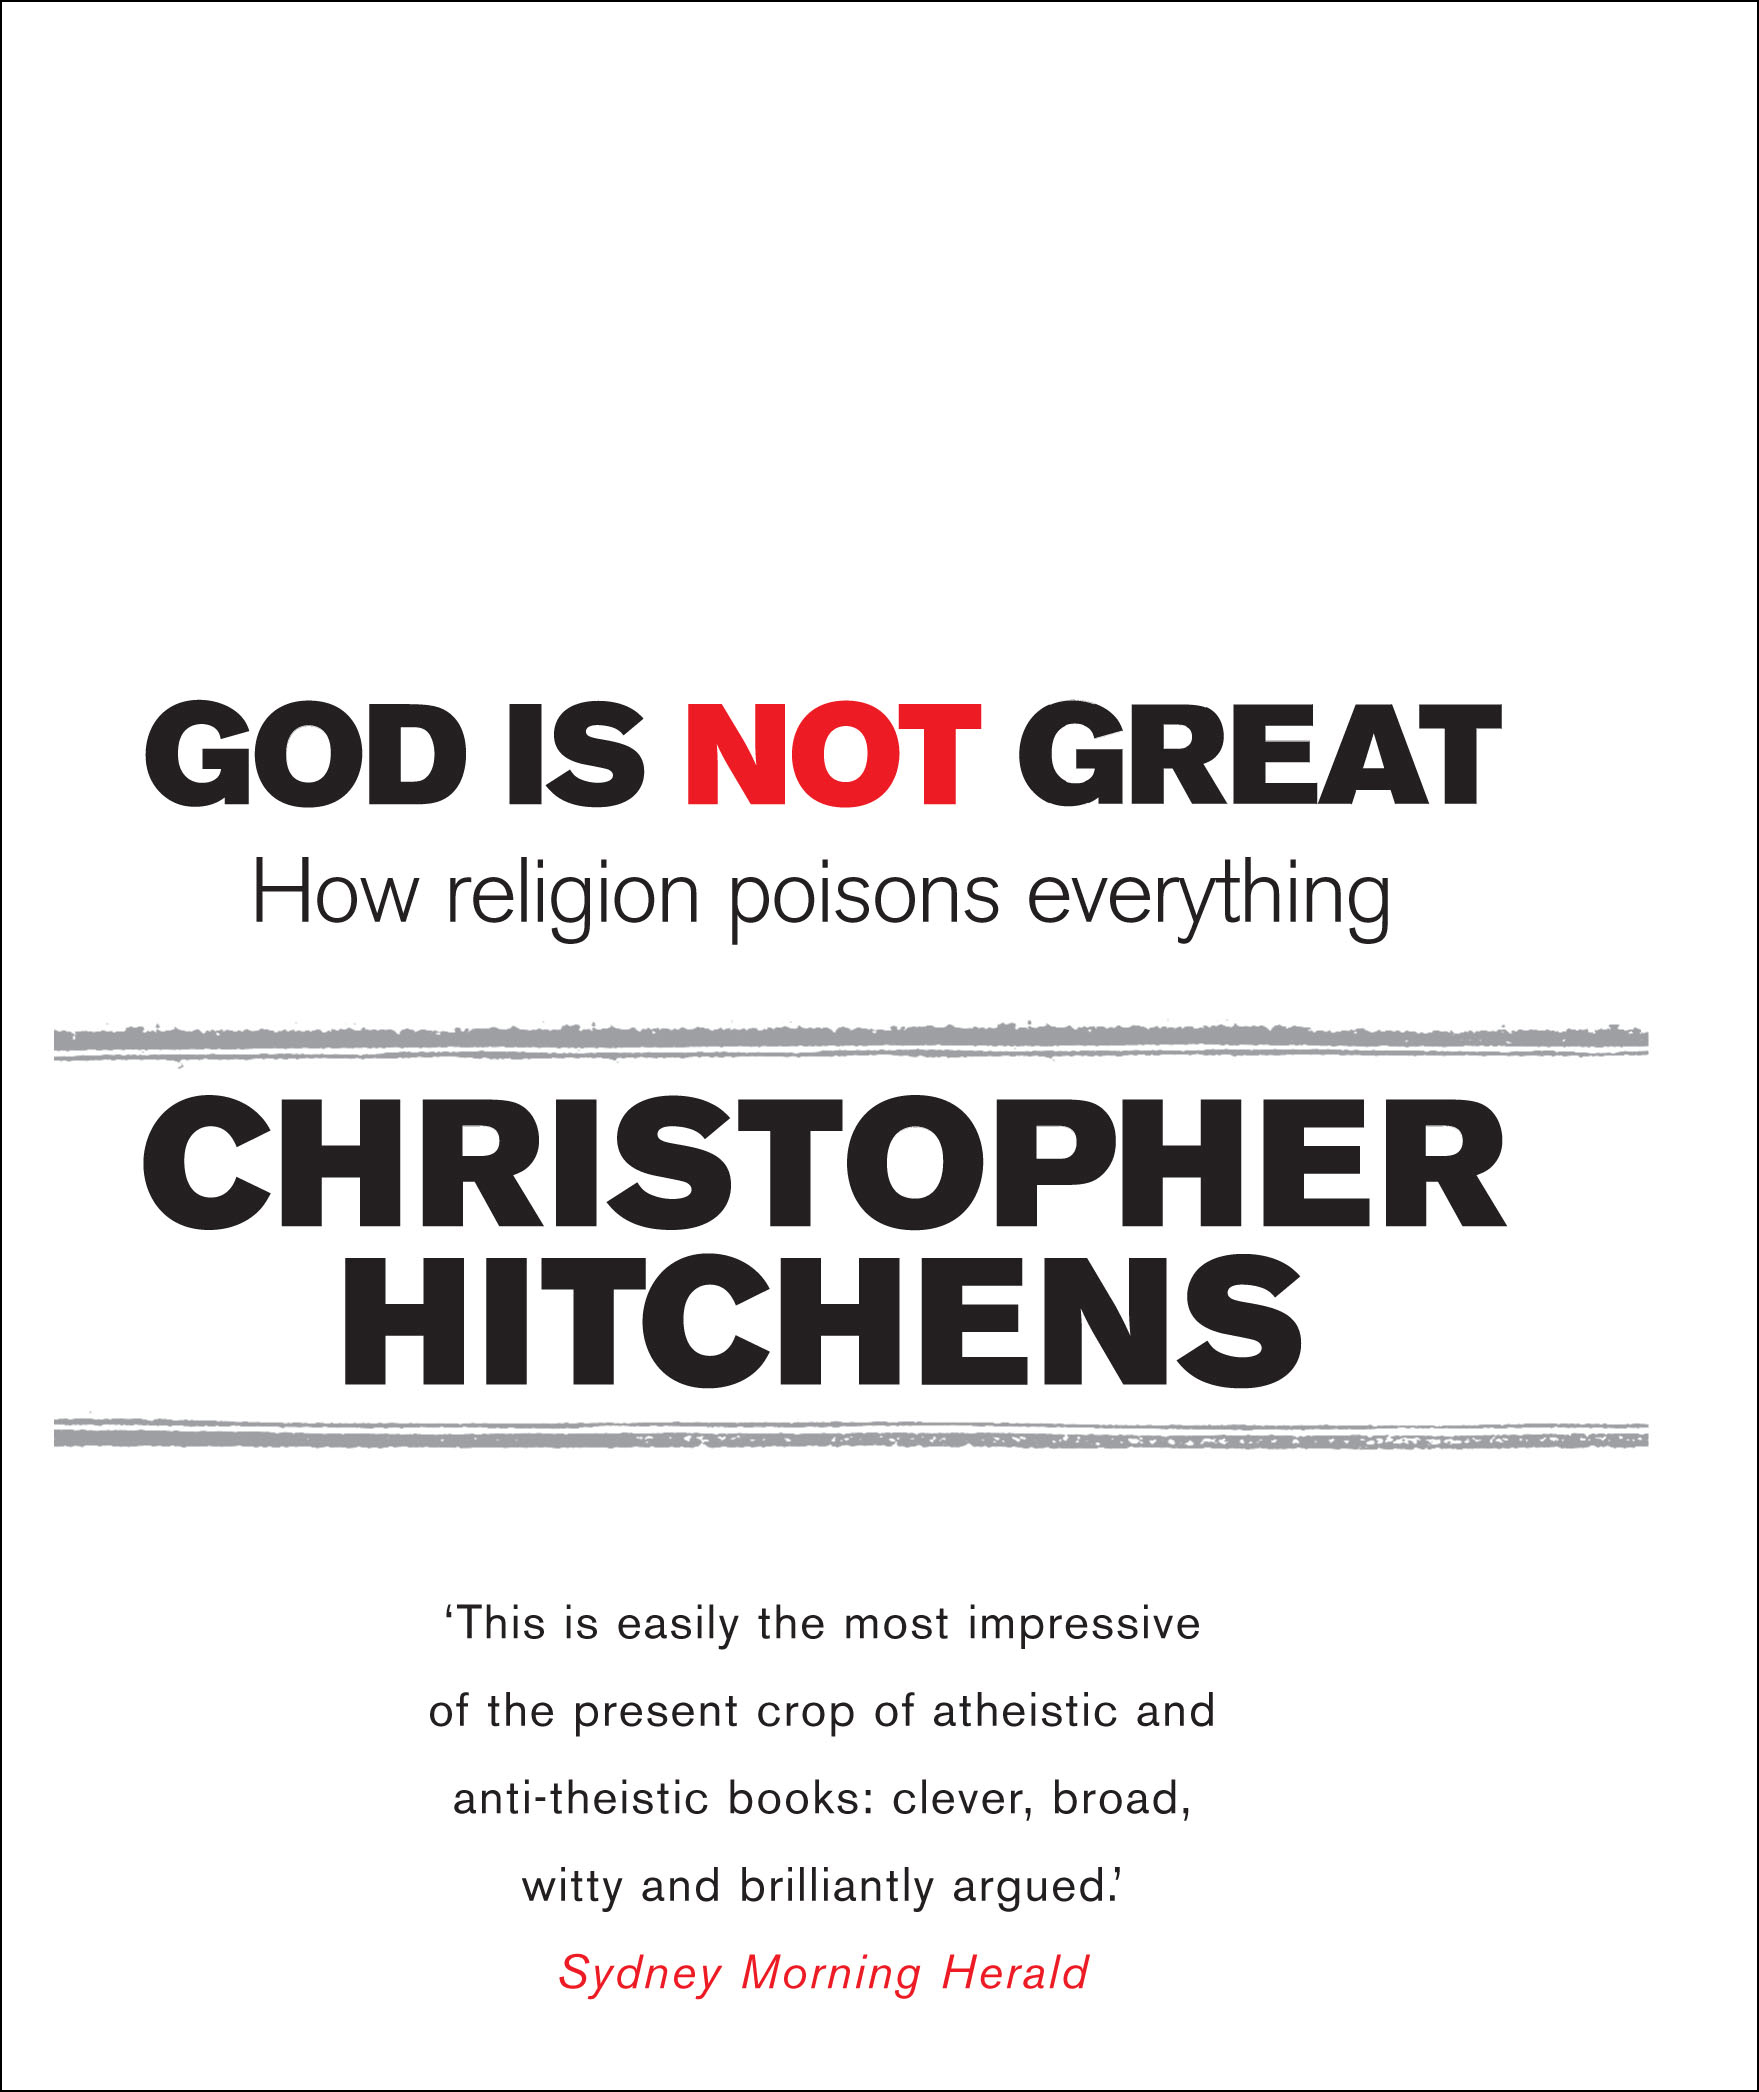 arguably essays by christopher hitchens google books Arguably : essays (christopher hitchens) at booksamillioncom the first new collection of essays by christopher hitchens since 2004, arguably offers an indispensable key to understanding the passionate and skeptical spirit of one of our most dazzling writers, widely admired for the clarity of his style, a result of his disciplined.